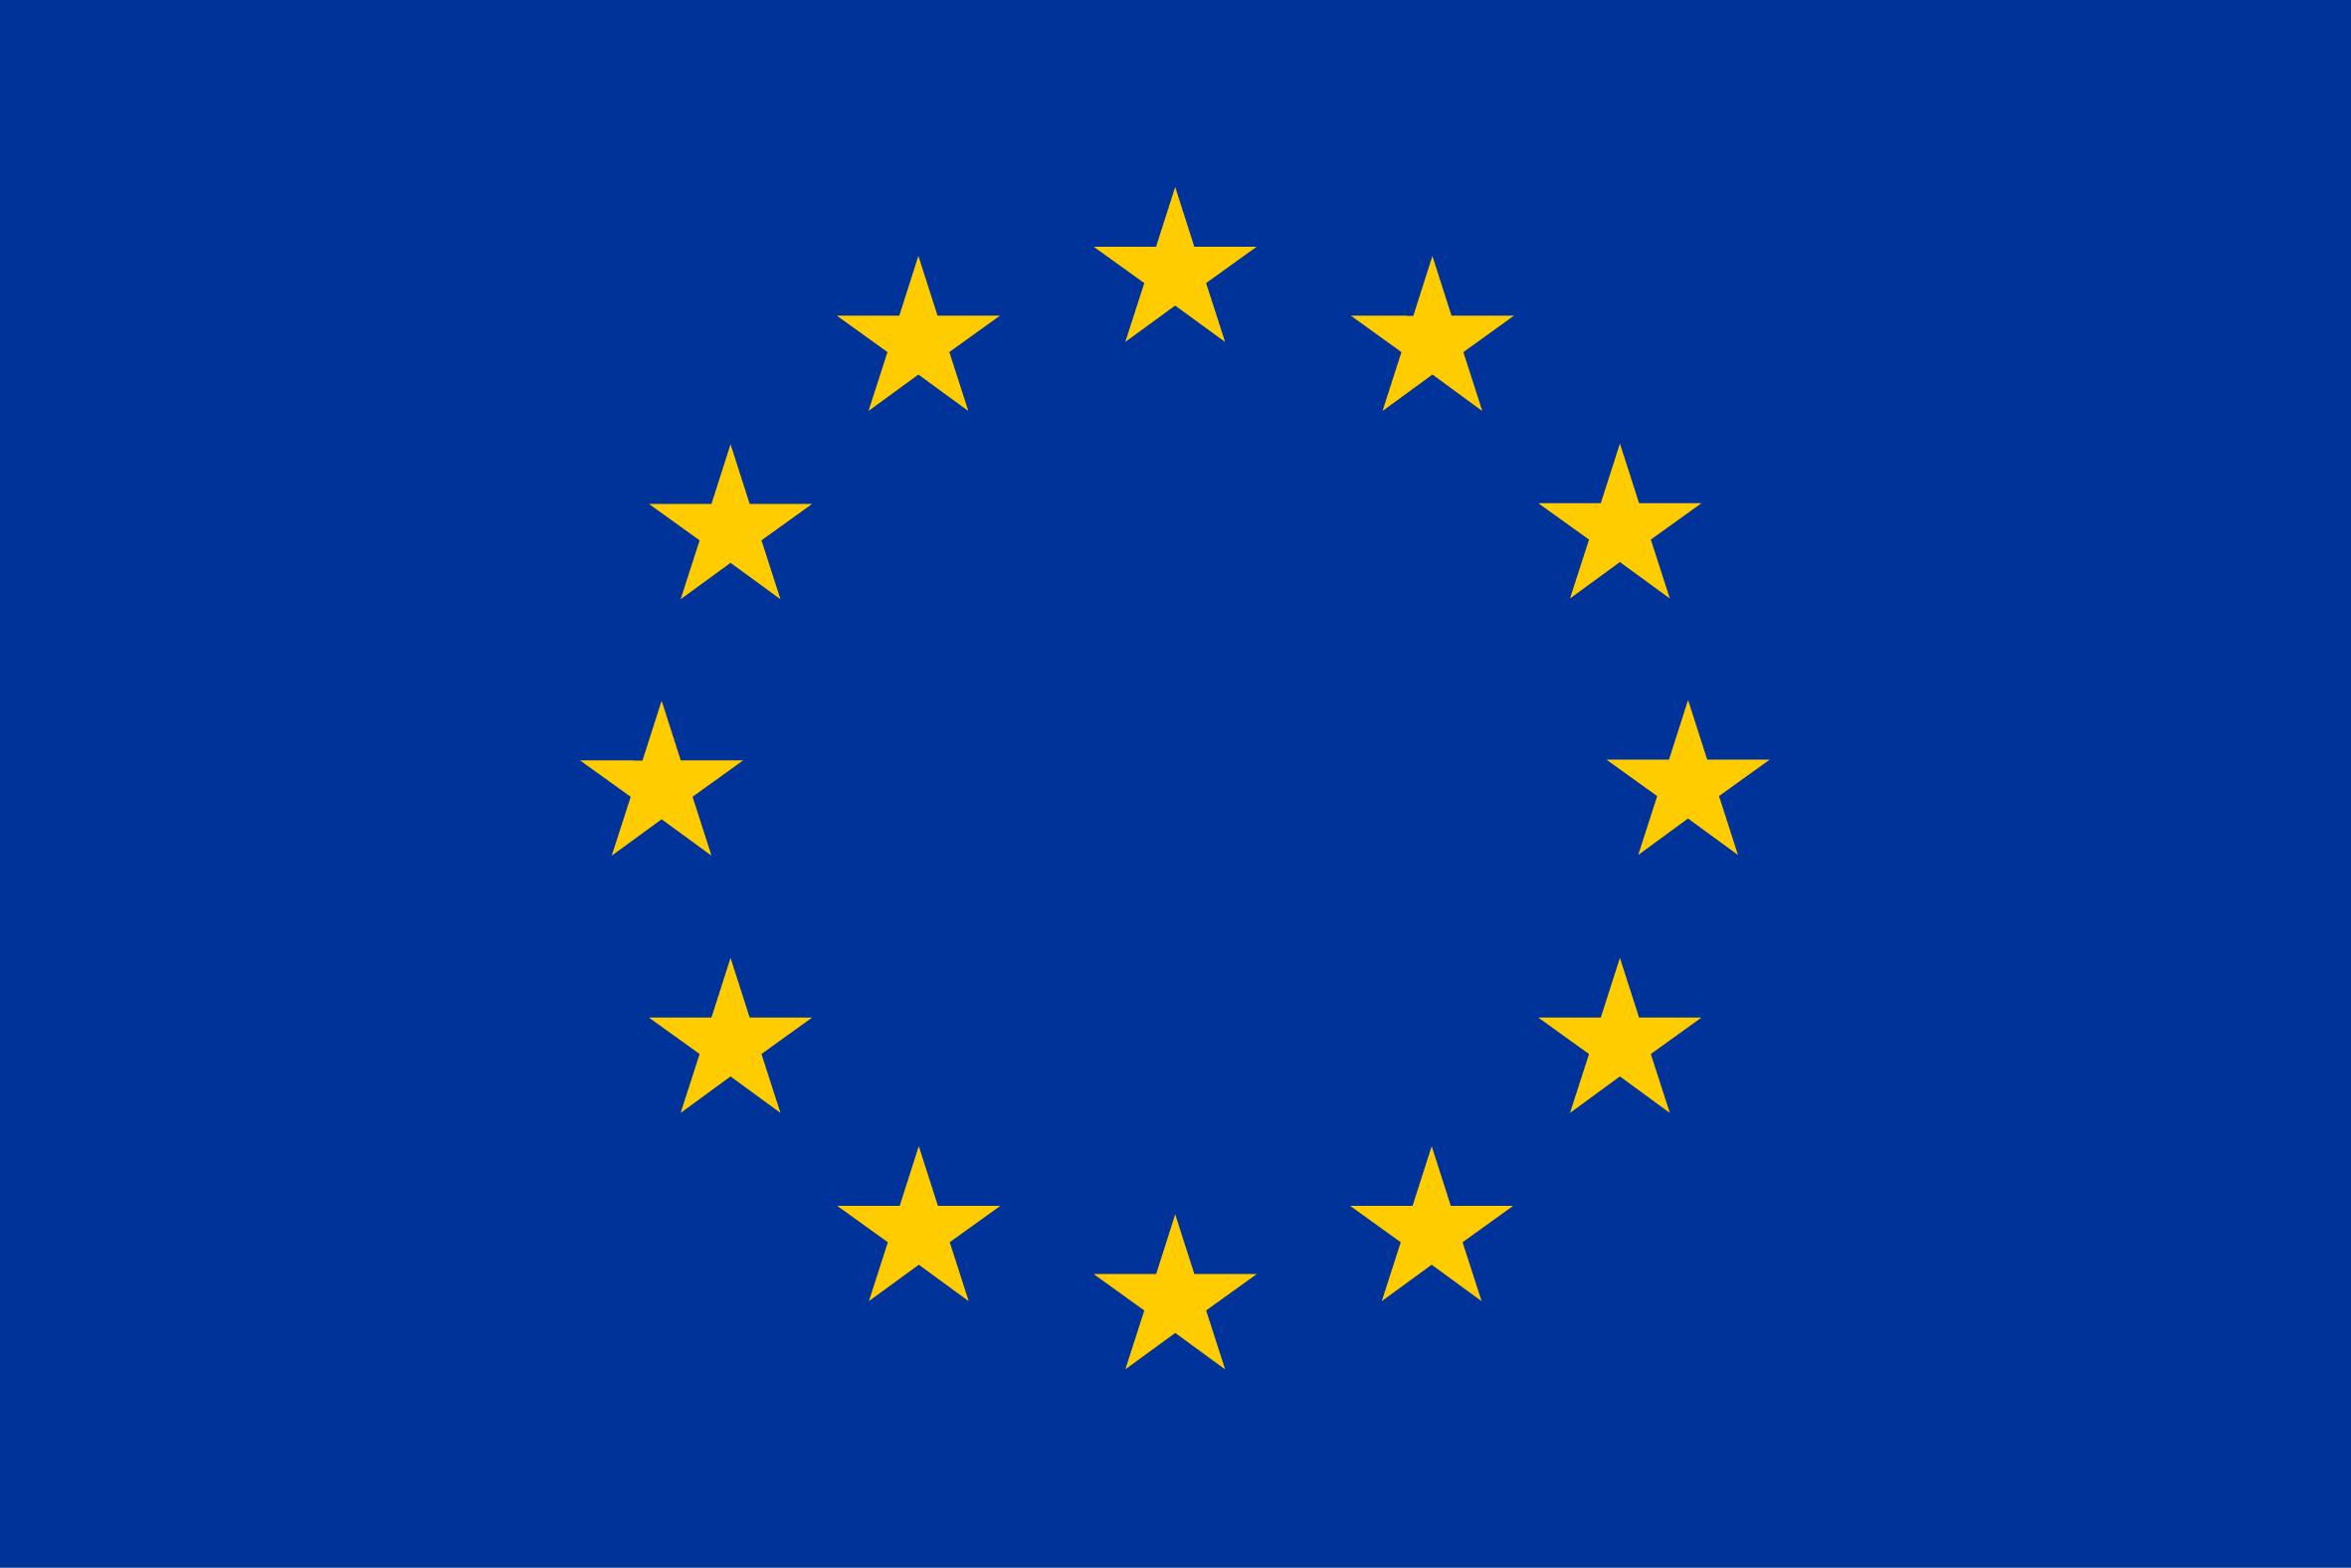 EU-flag. Stars in a circle on a blue background.